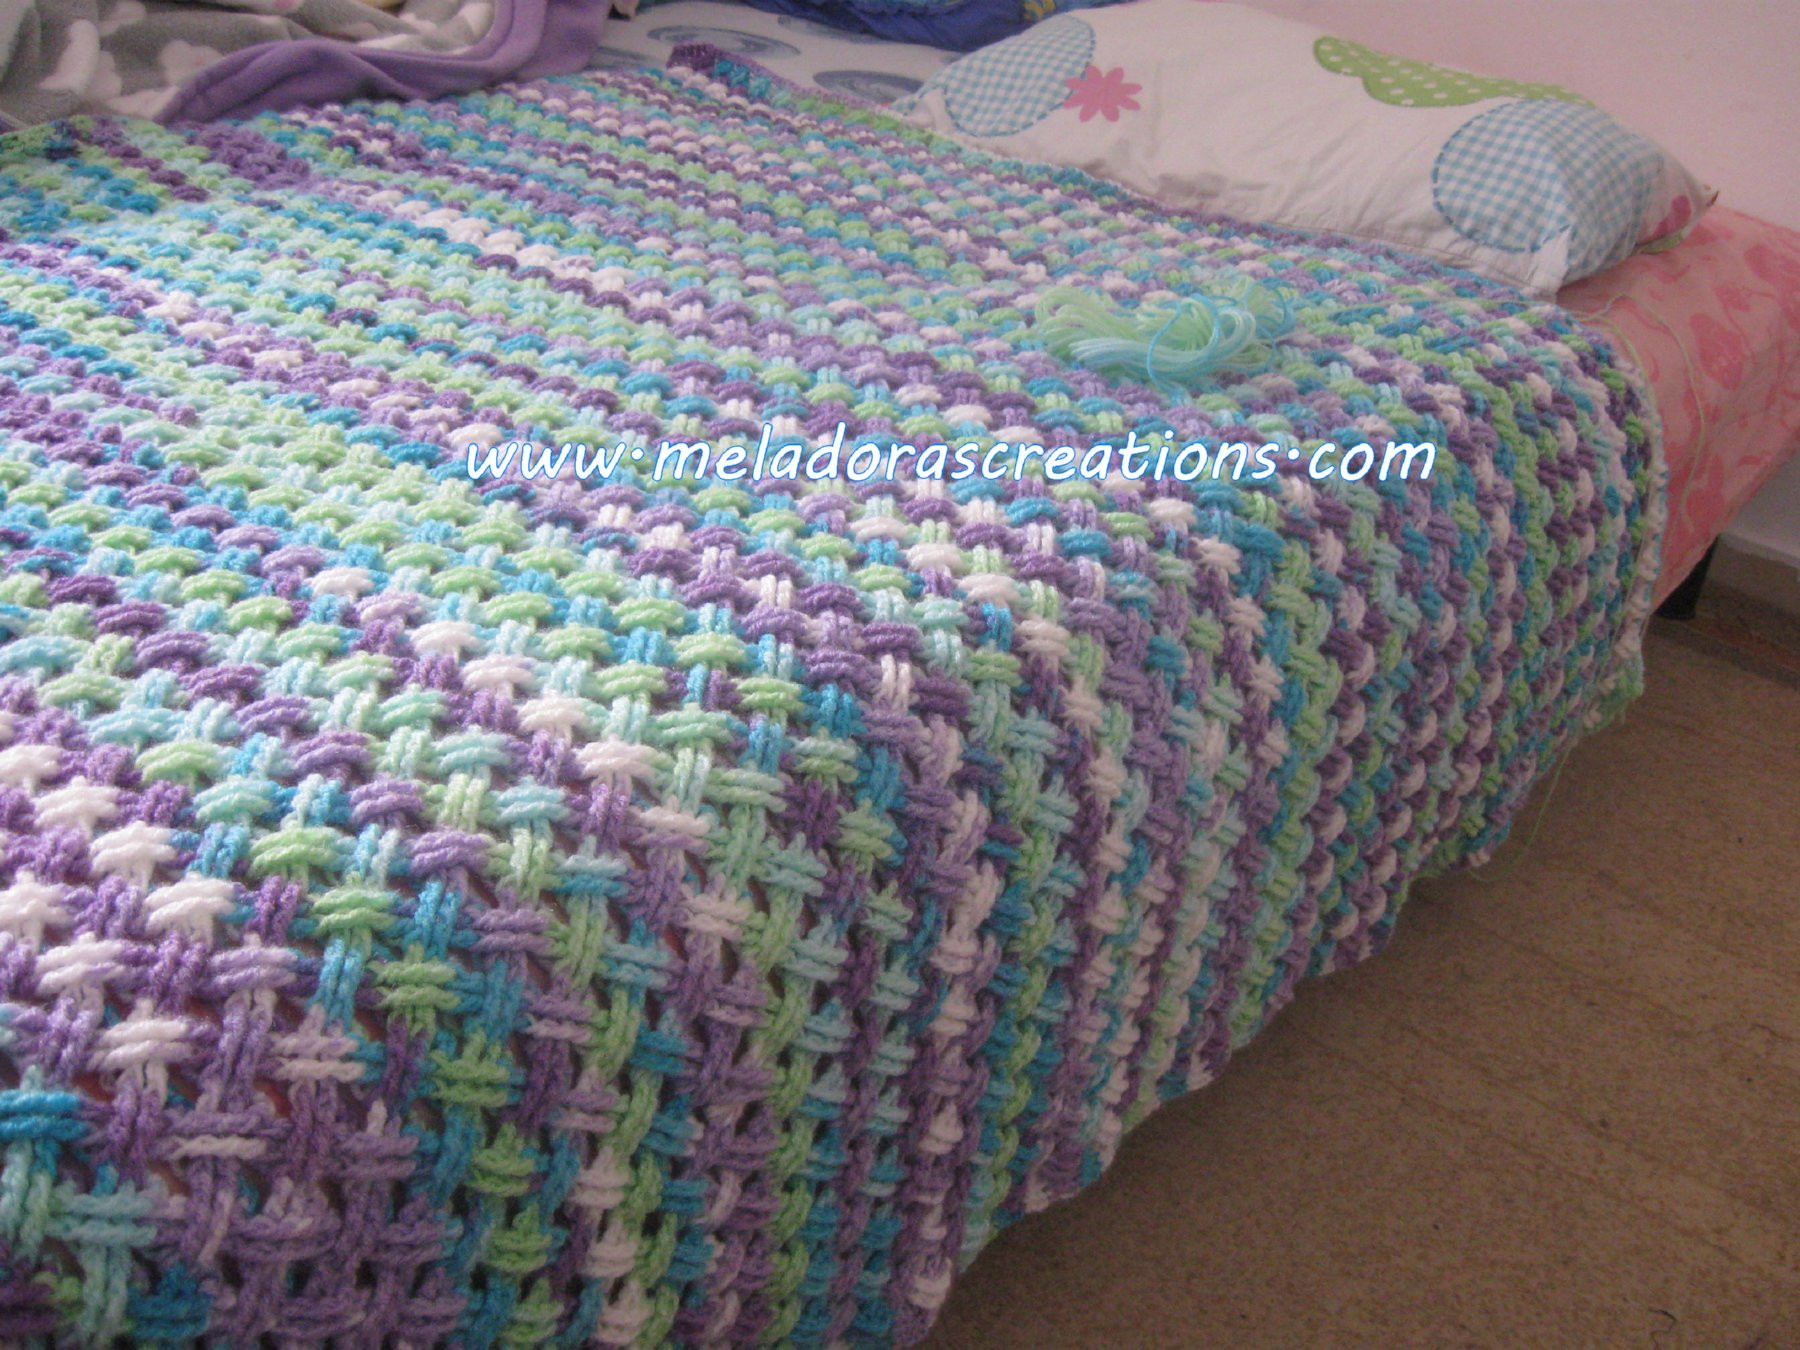 Crochet Cable Pattern Beautiful Meladora S Creations – Interweave Cable Celtic Weave Of Perfect 40 Ideas Crochet Cable Pattern